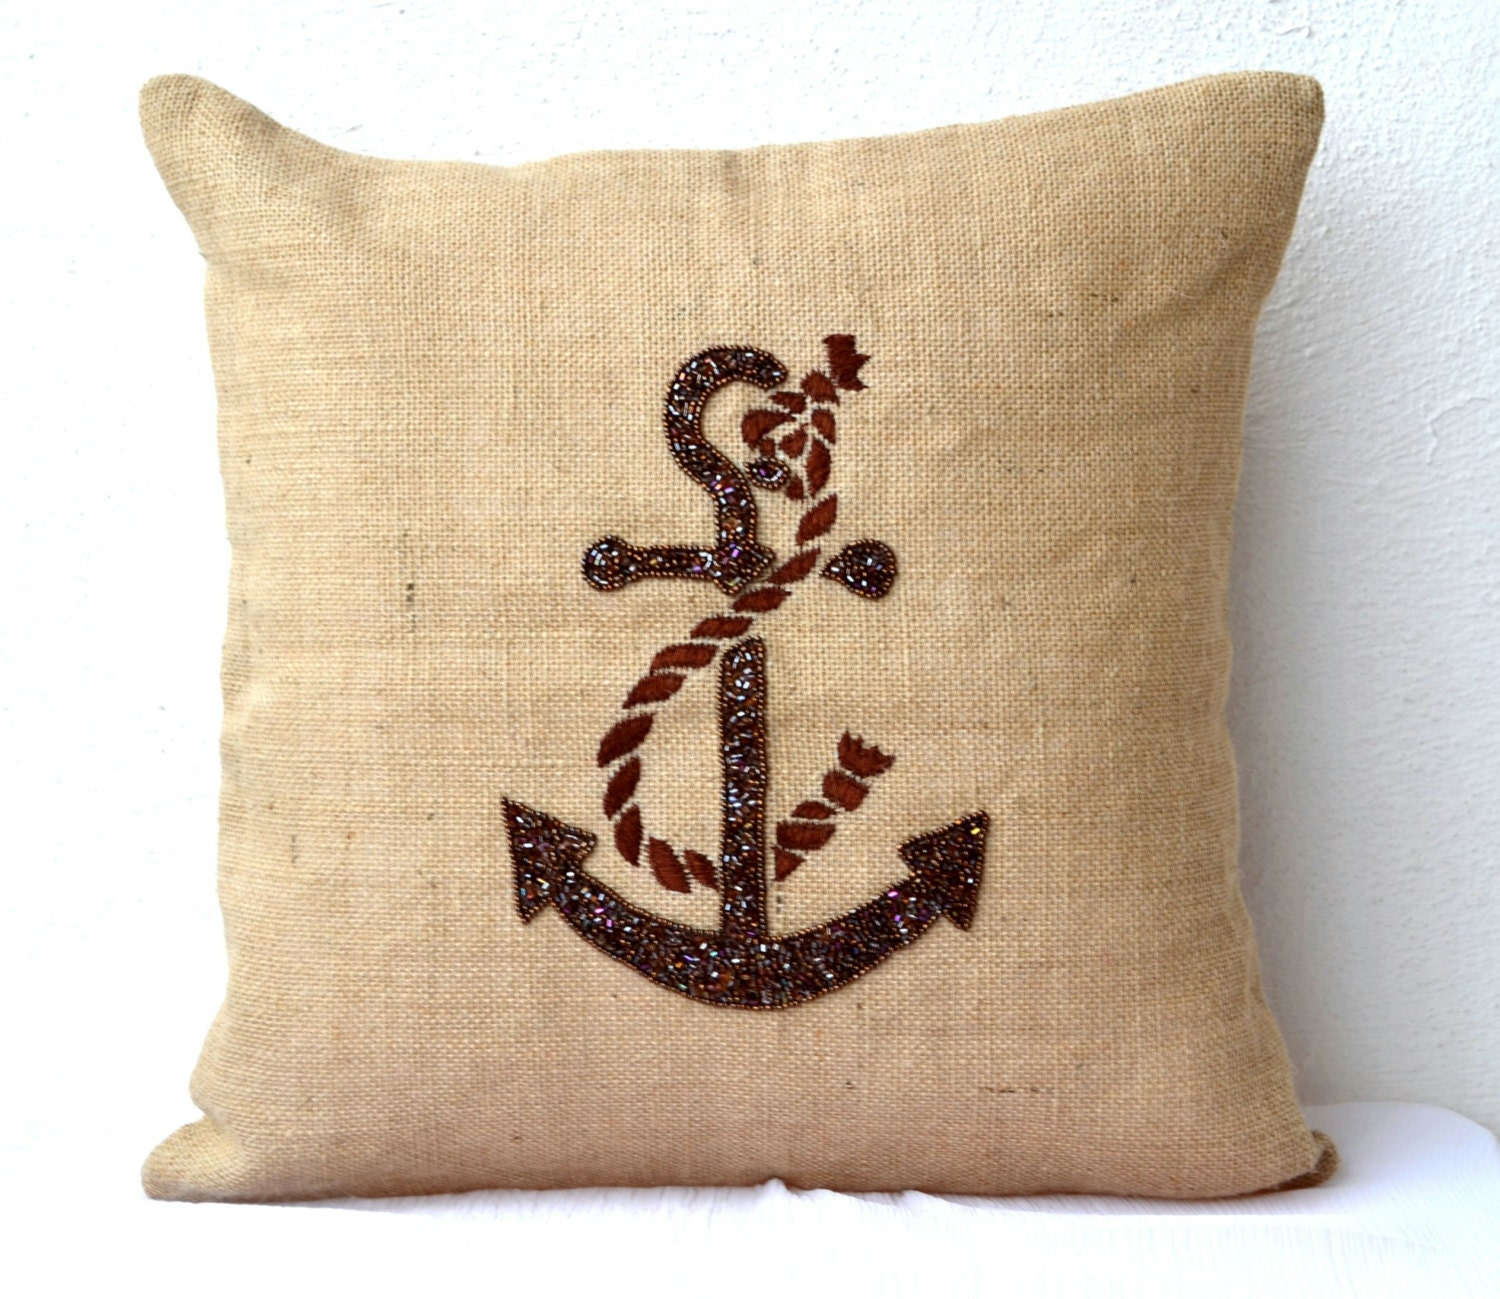 Nautical Coastal Throw Pillows : Anchor throw pillows Nautical pillow covers Beach by AmoreBeaute